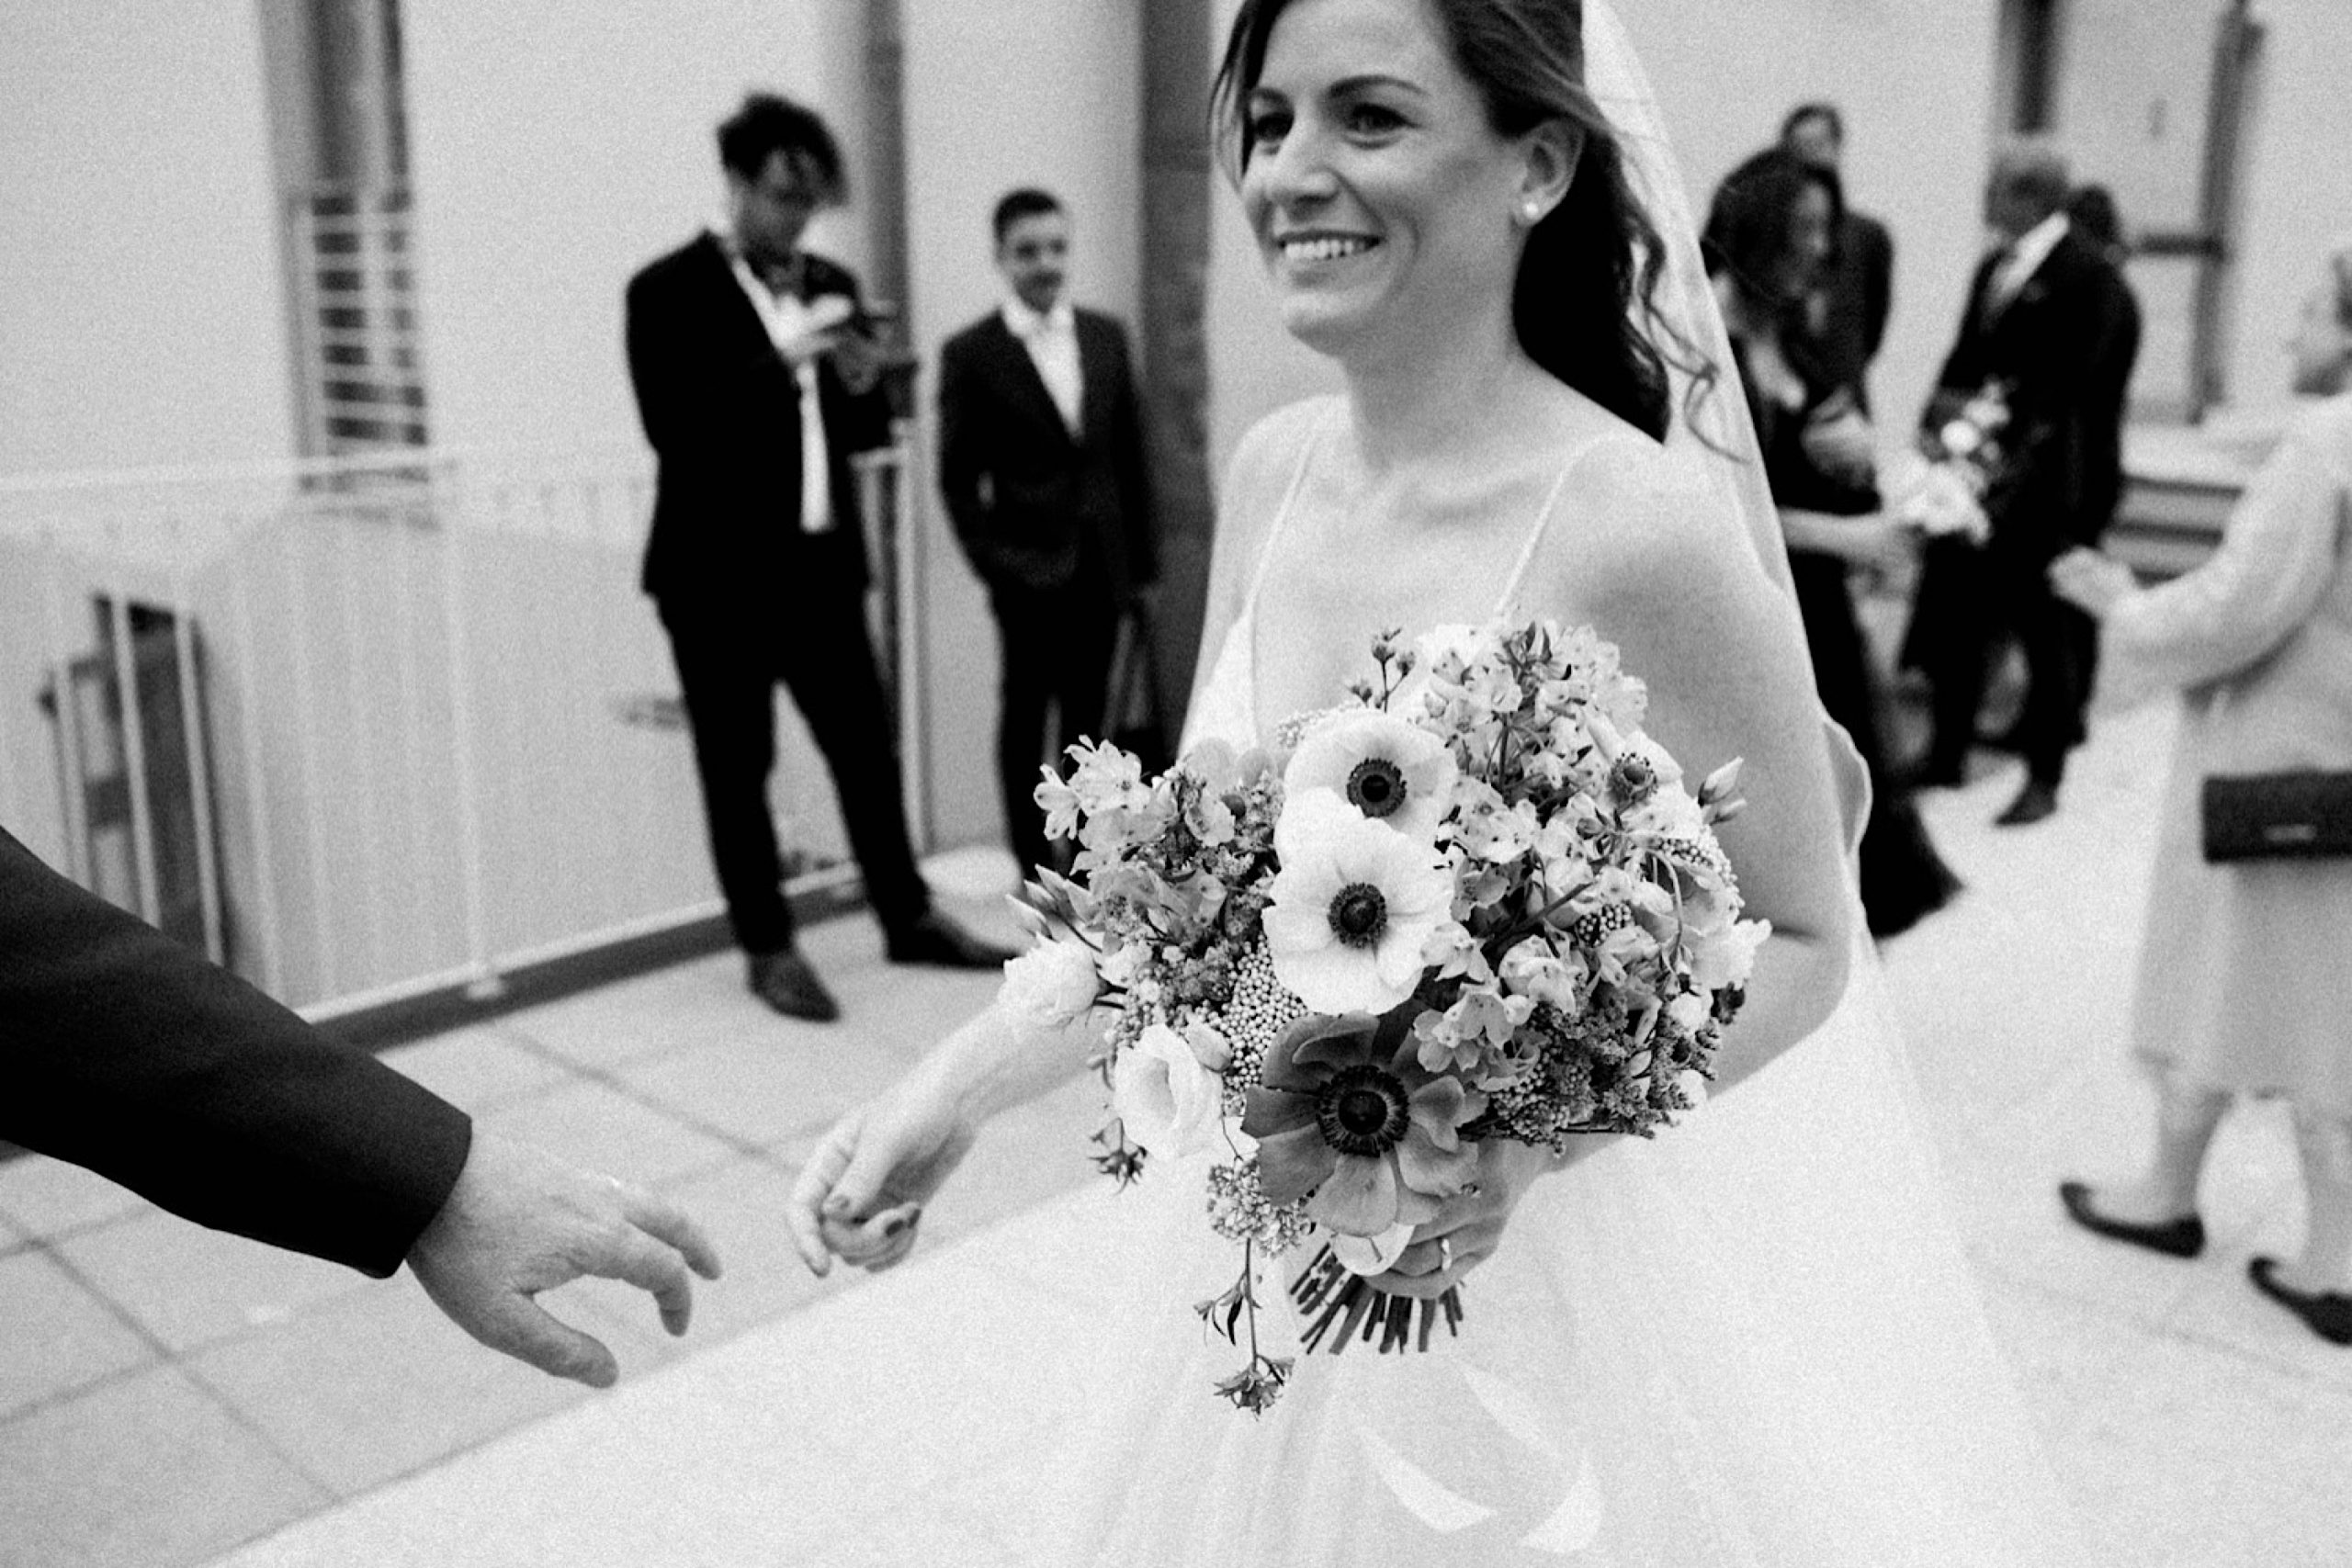 Candid black & white Destination Wedding Photography of the bride leaving her ceremony at the ex-Convento dell'Annunziata.